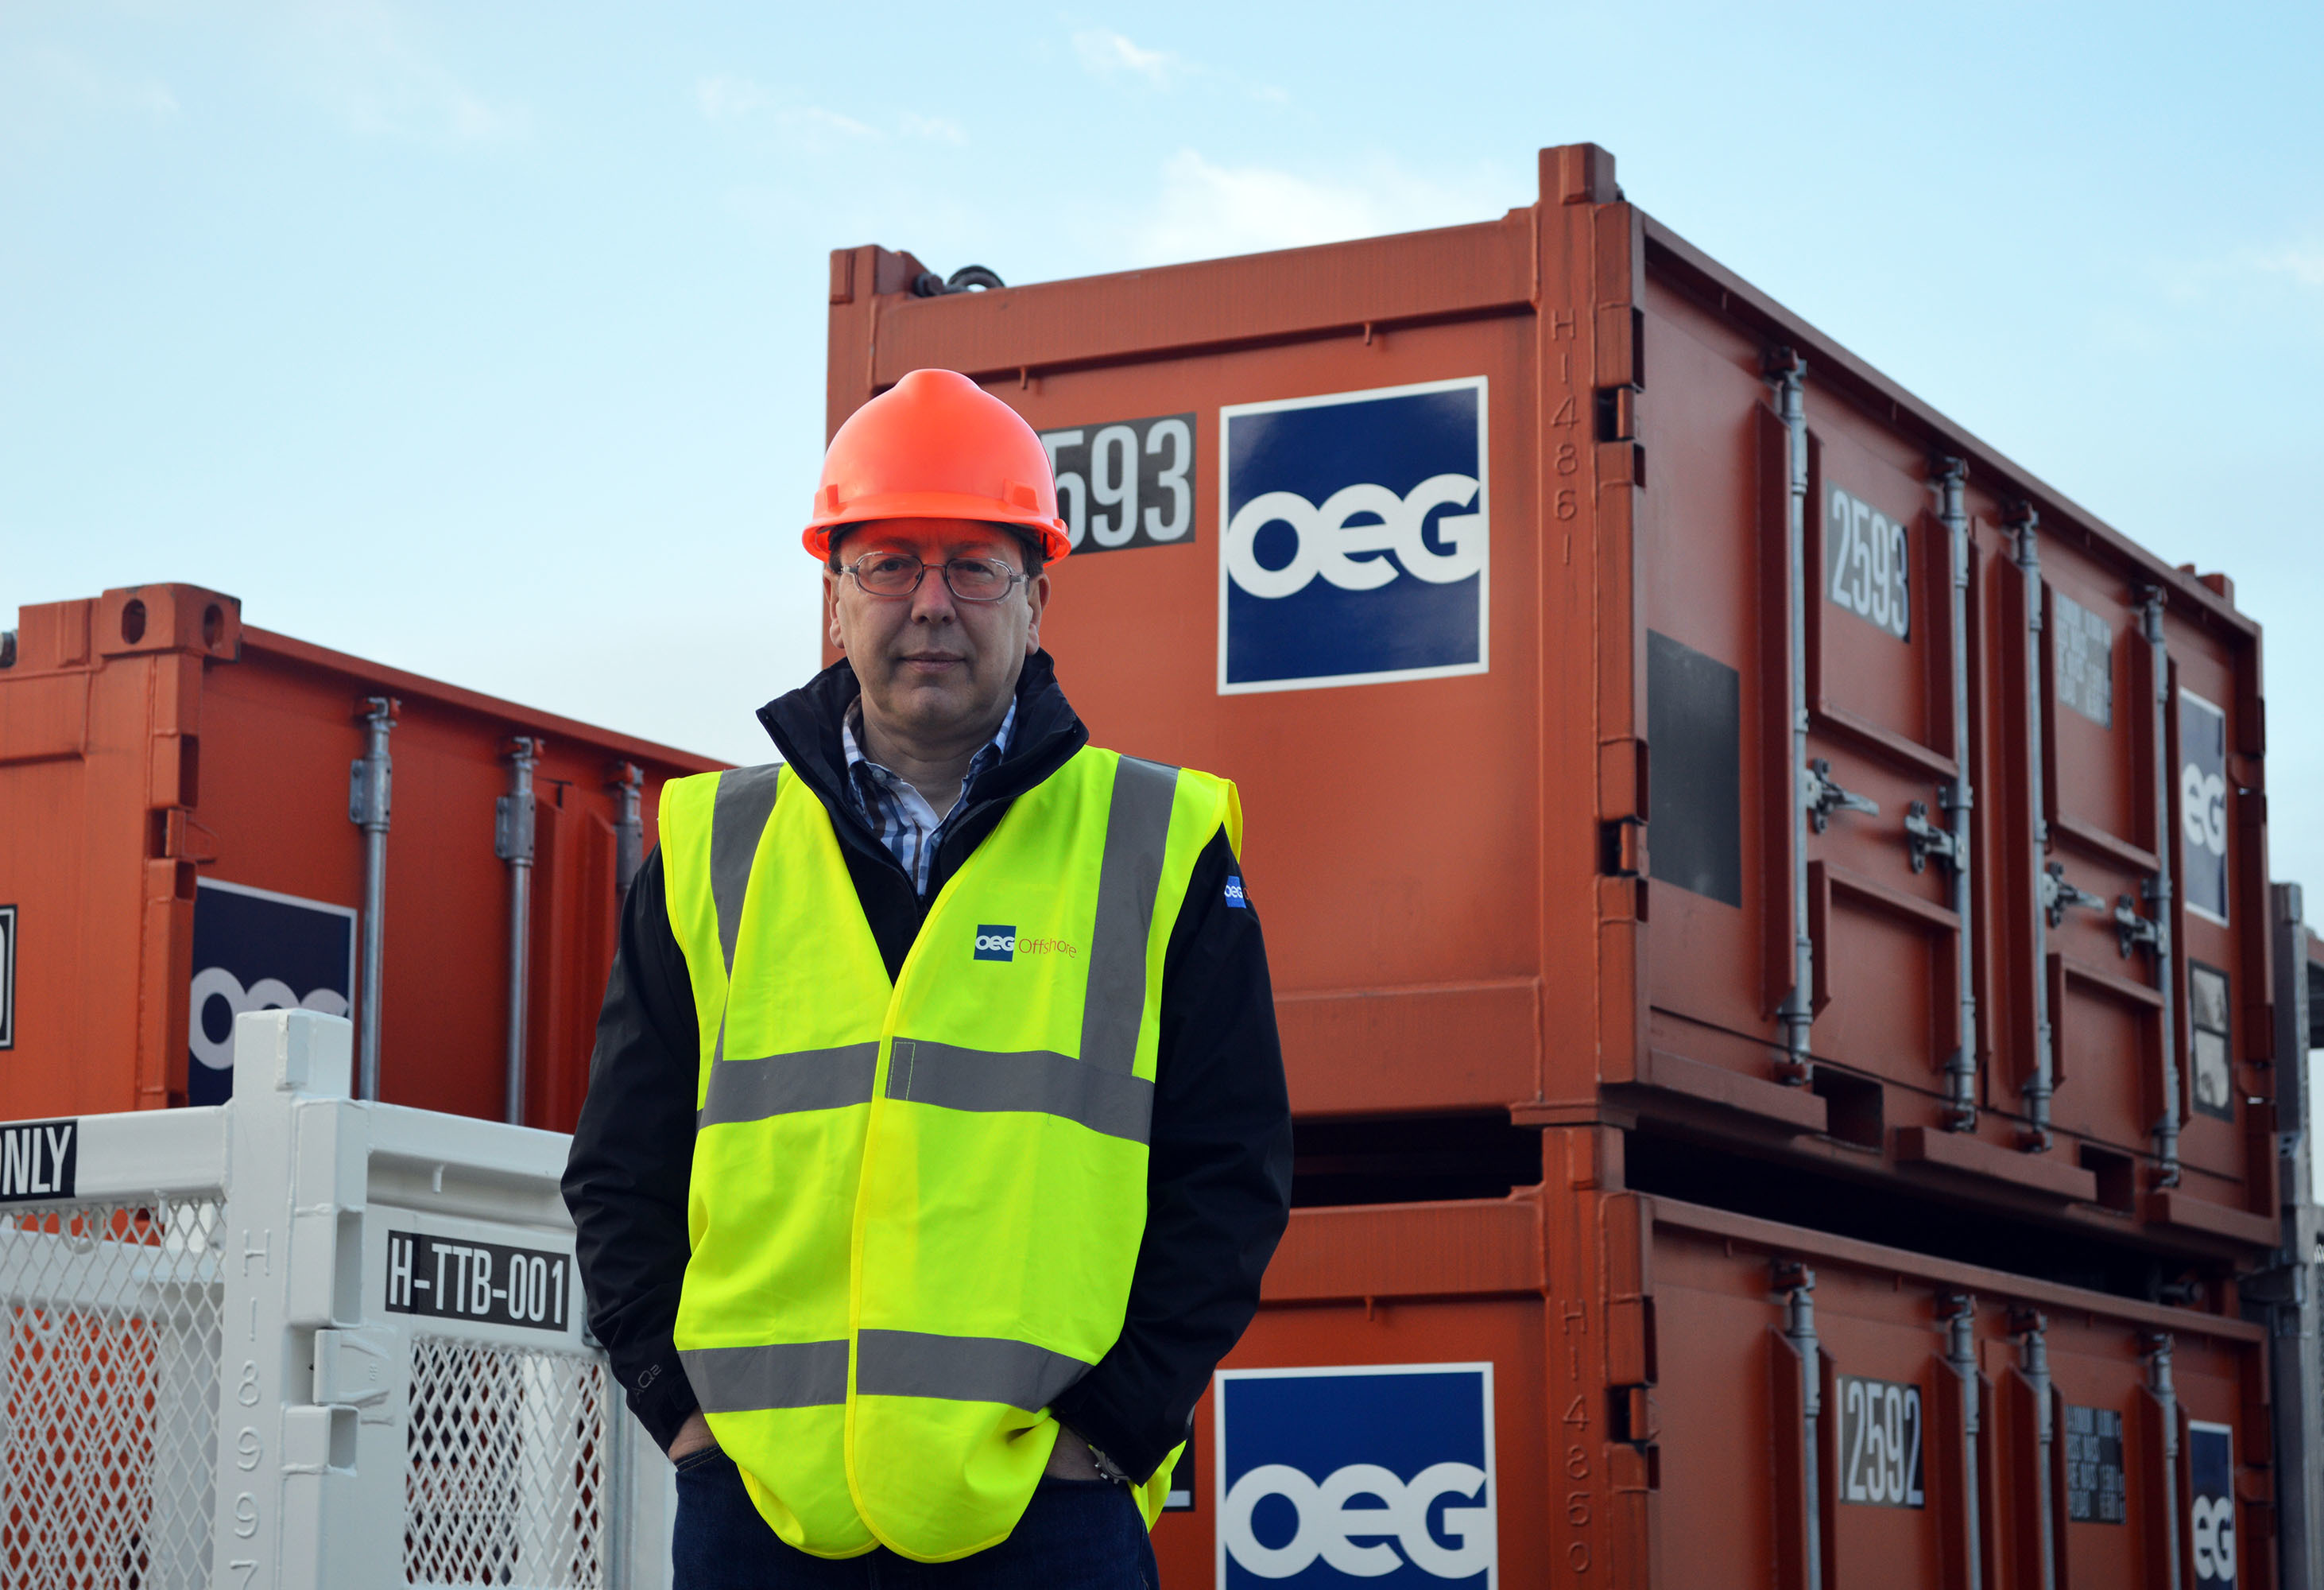 Adrian Bannister has bee appointed as the new CFO at OEG Offshore